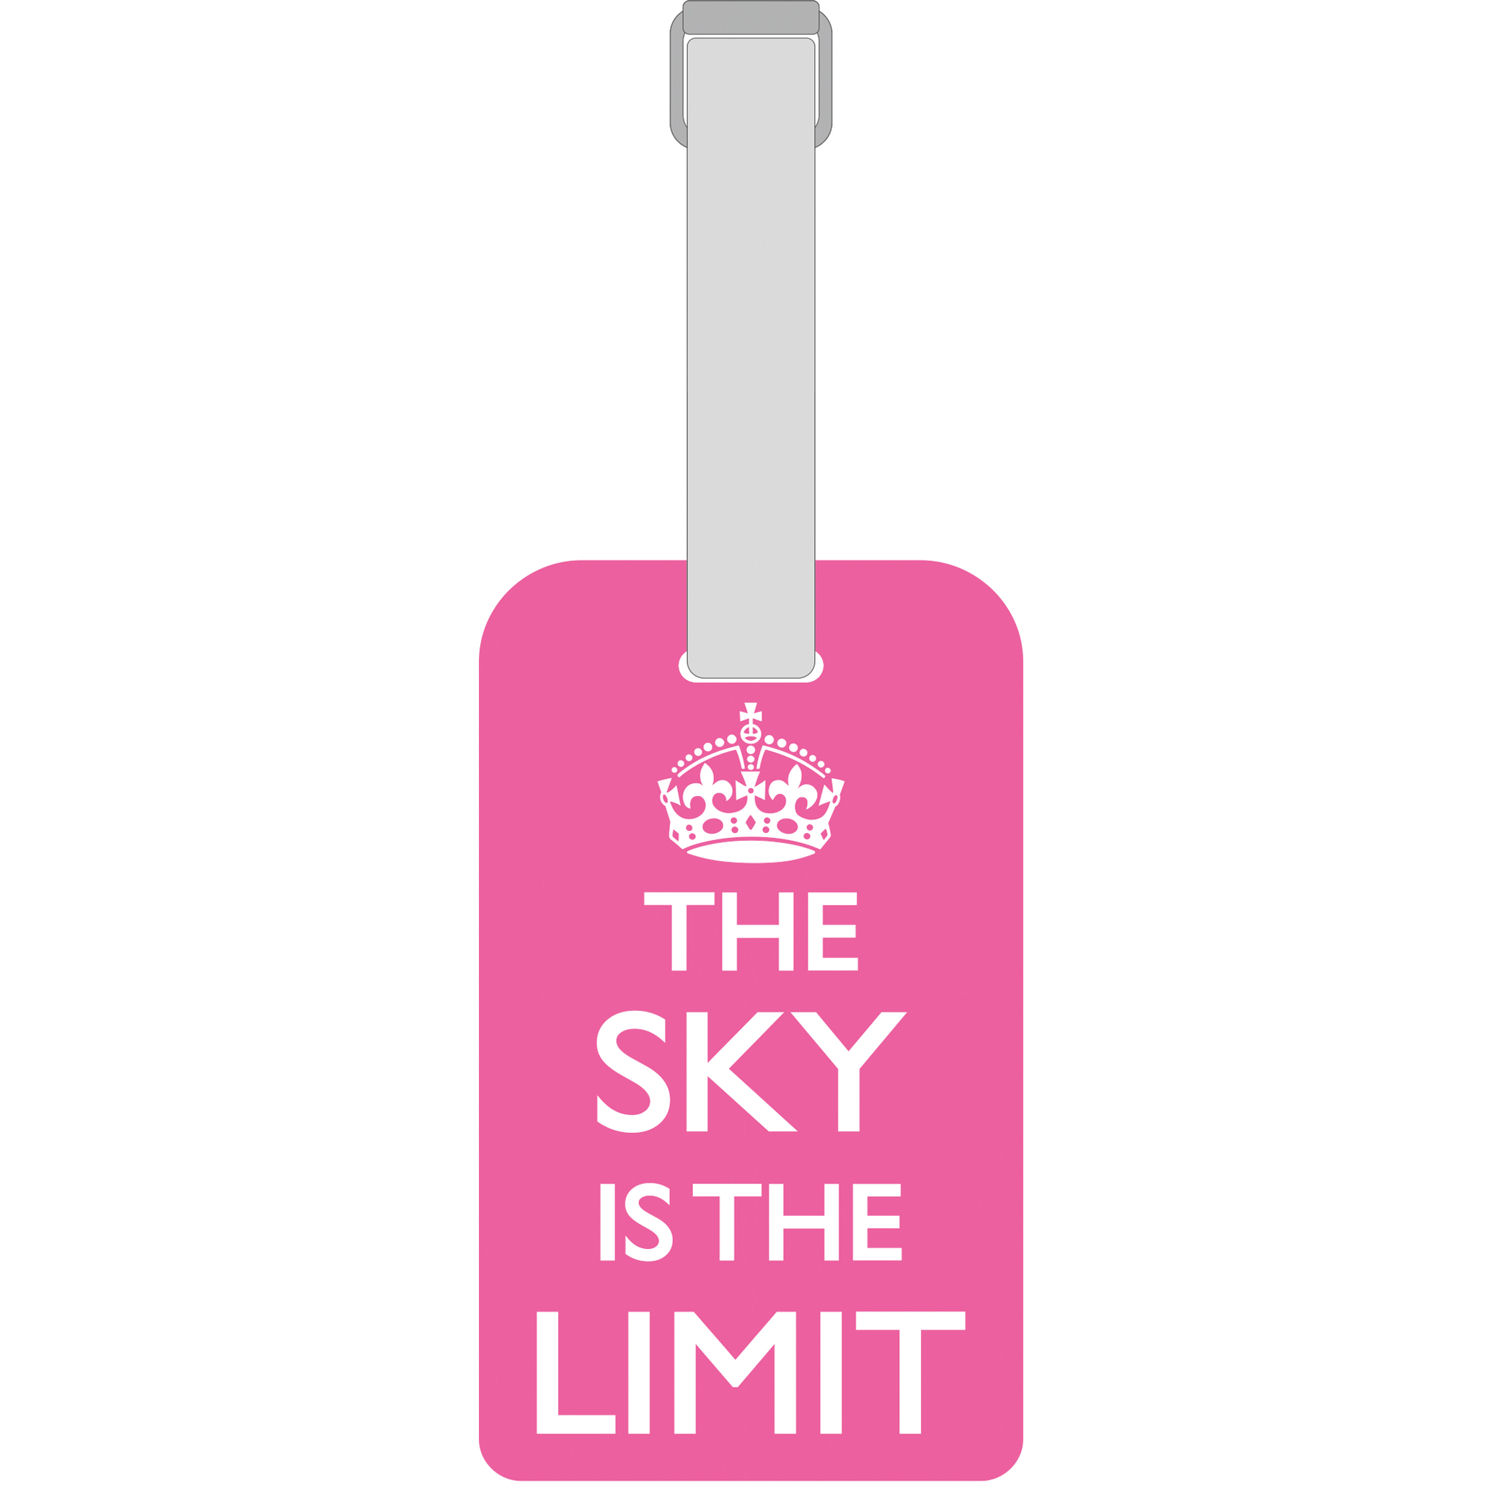 NEW PINK SKY IS THE LIMIT LUGGAGE TAG RETRO GIFT LABEL SUITCASE ...